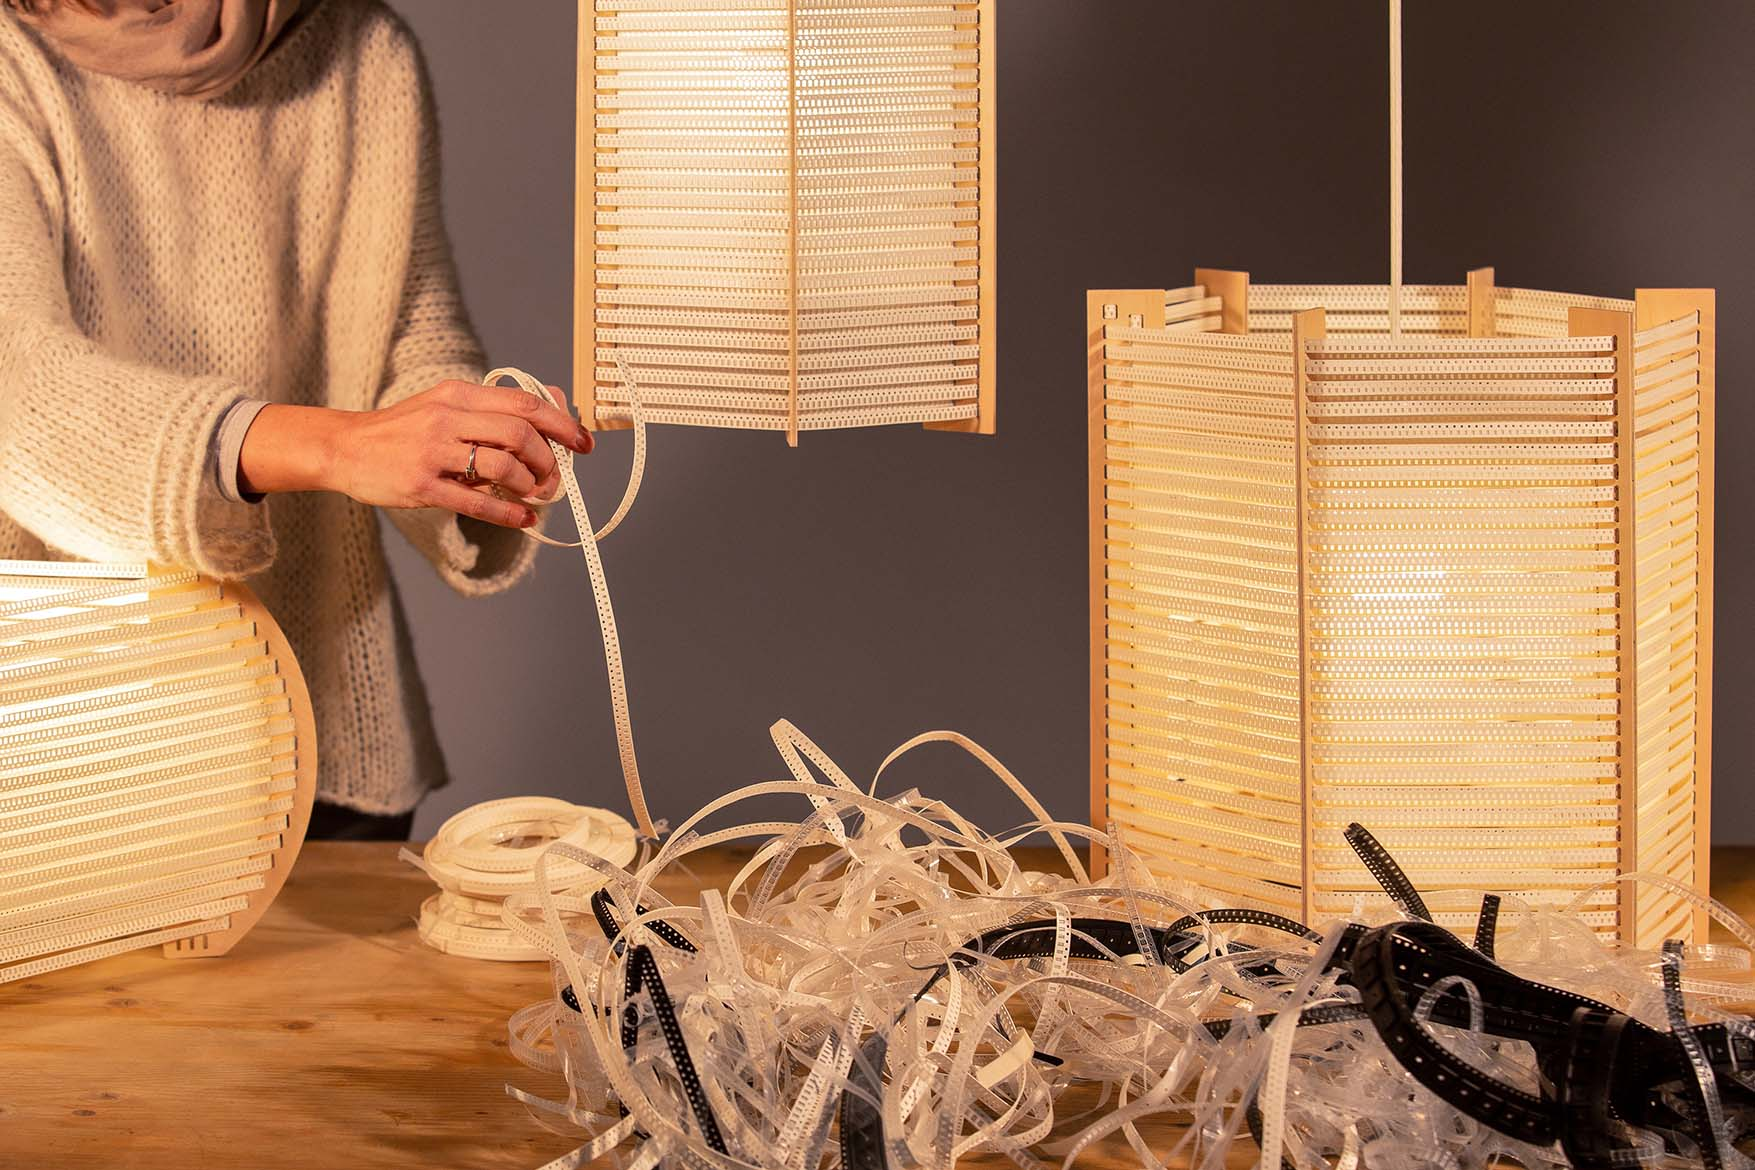 Enter and discover our original and unique collection of Lamps Made from Recycled Materials